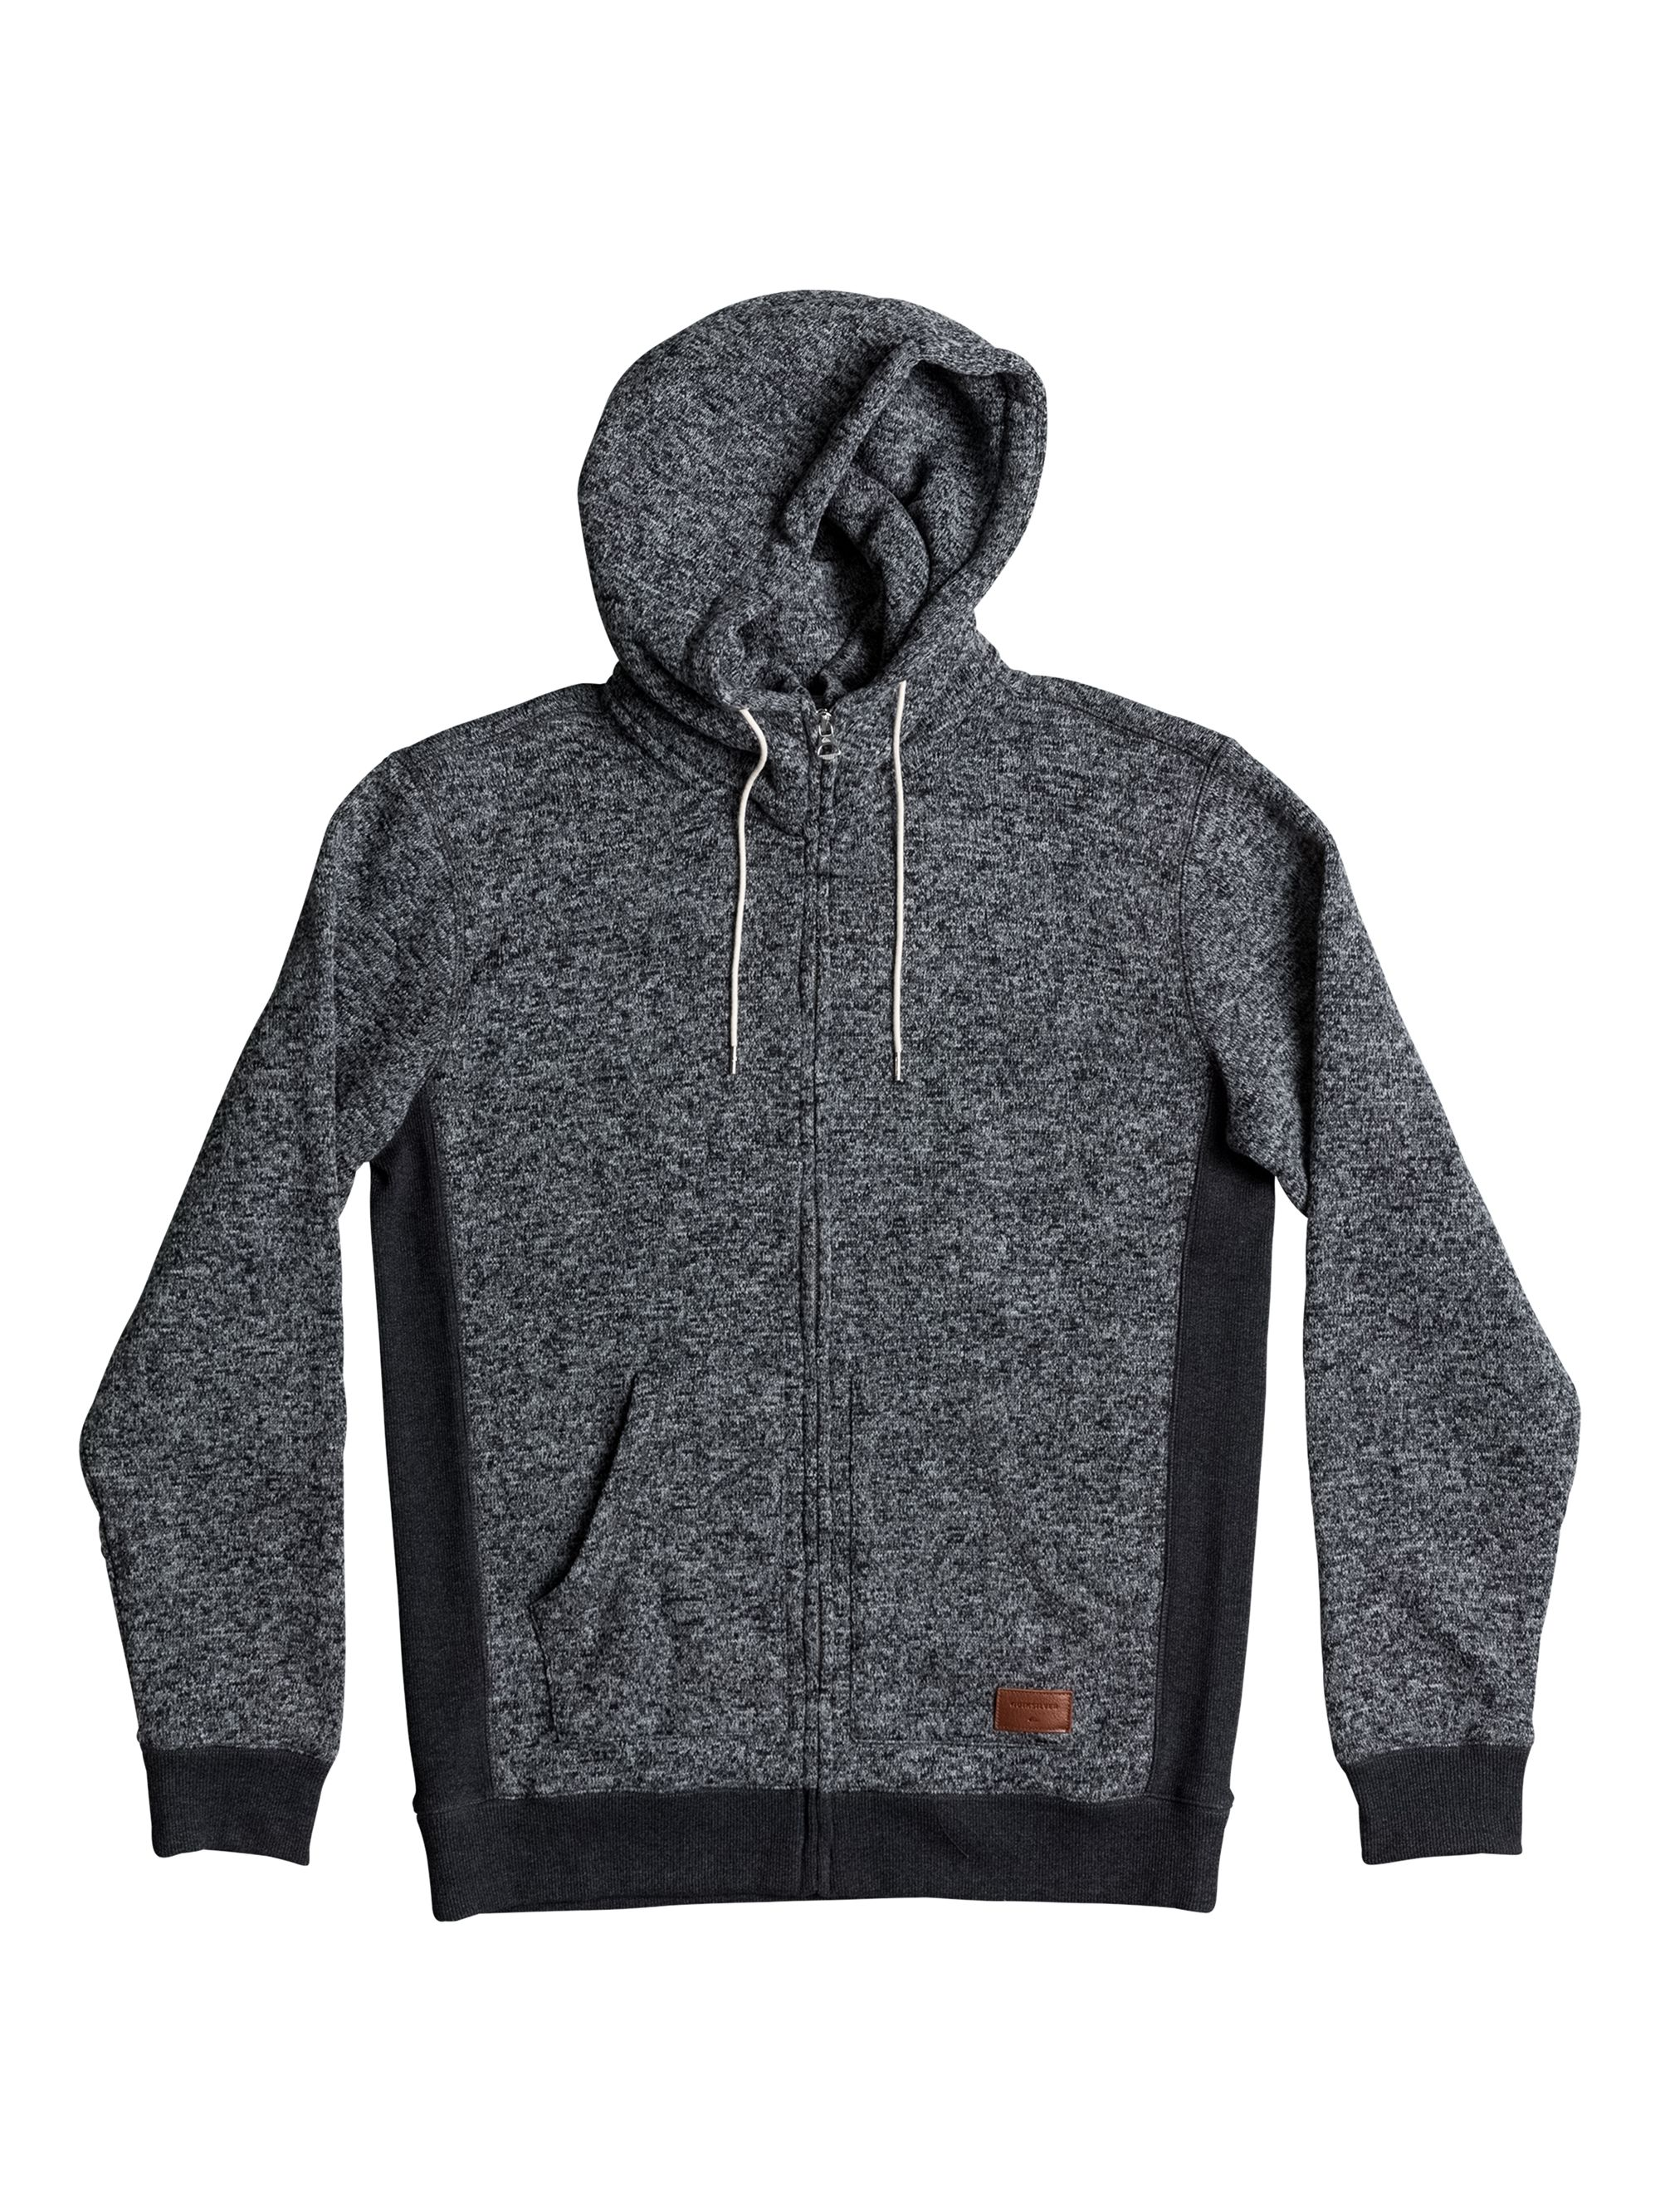 Men's Quiksilver Quiksilver Keller Zip-Up Fleece Hoodie, Charcoal